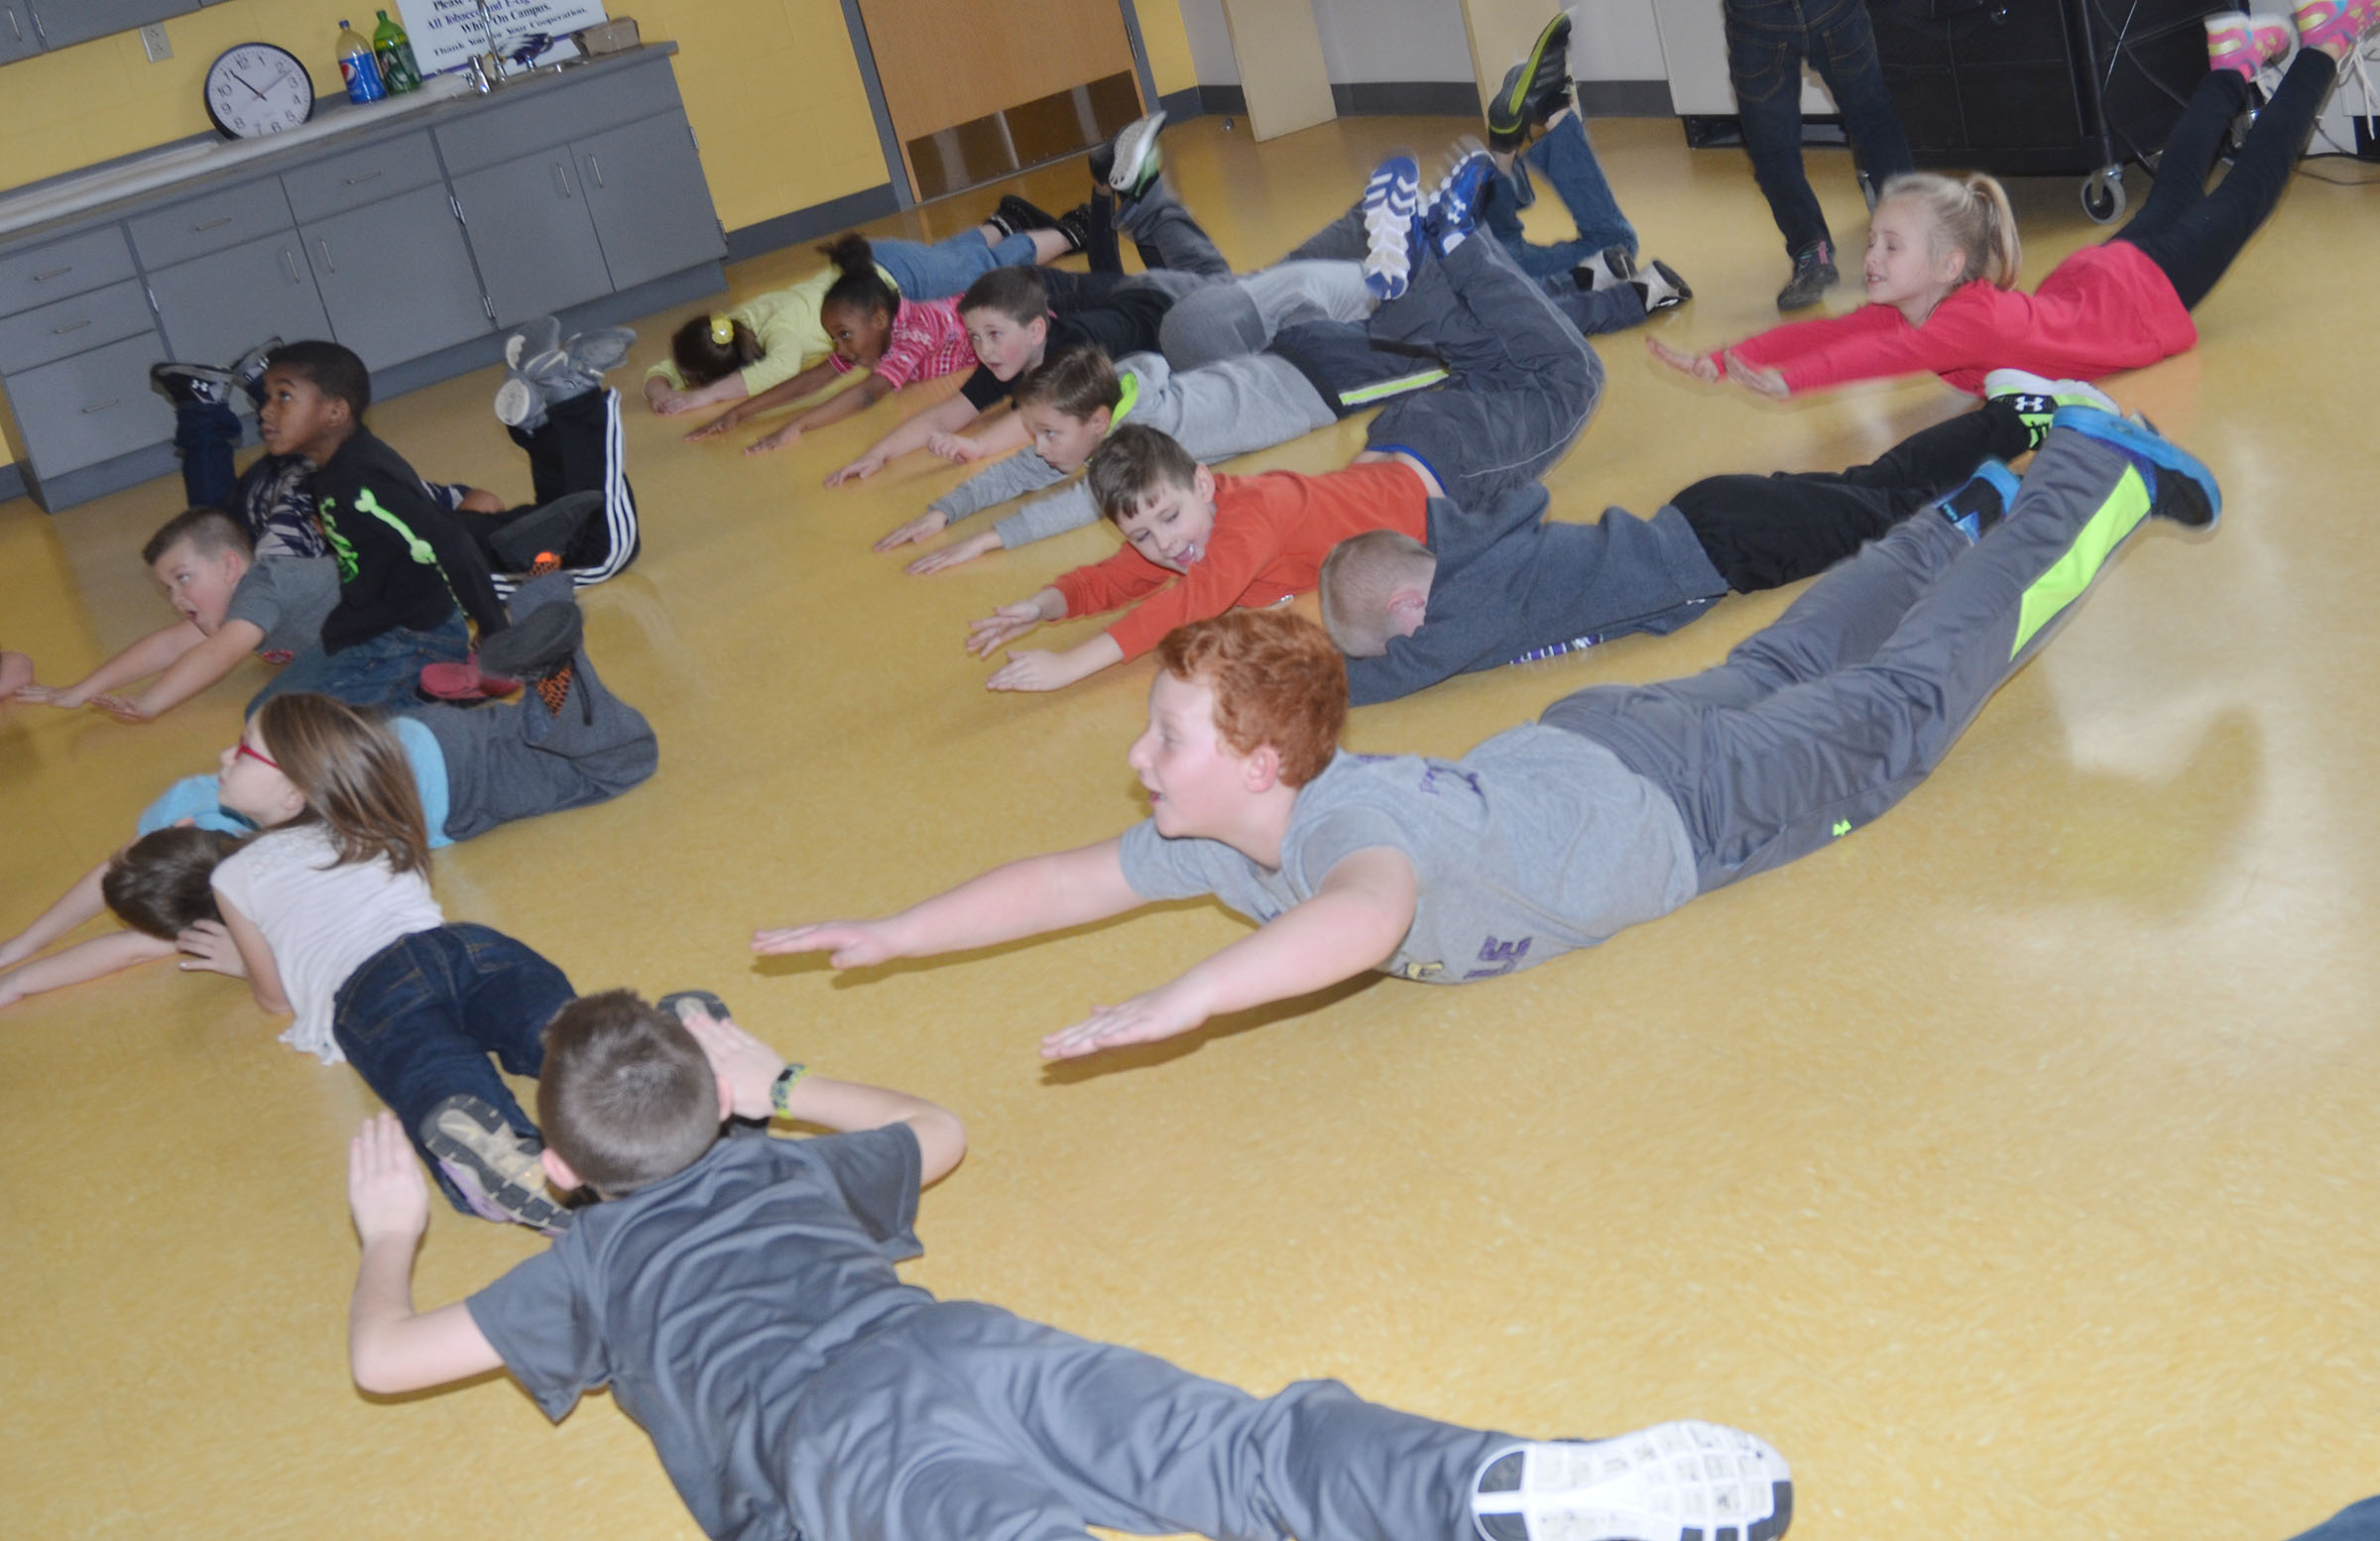 CES second-graders work out with the Sworkit program.